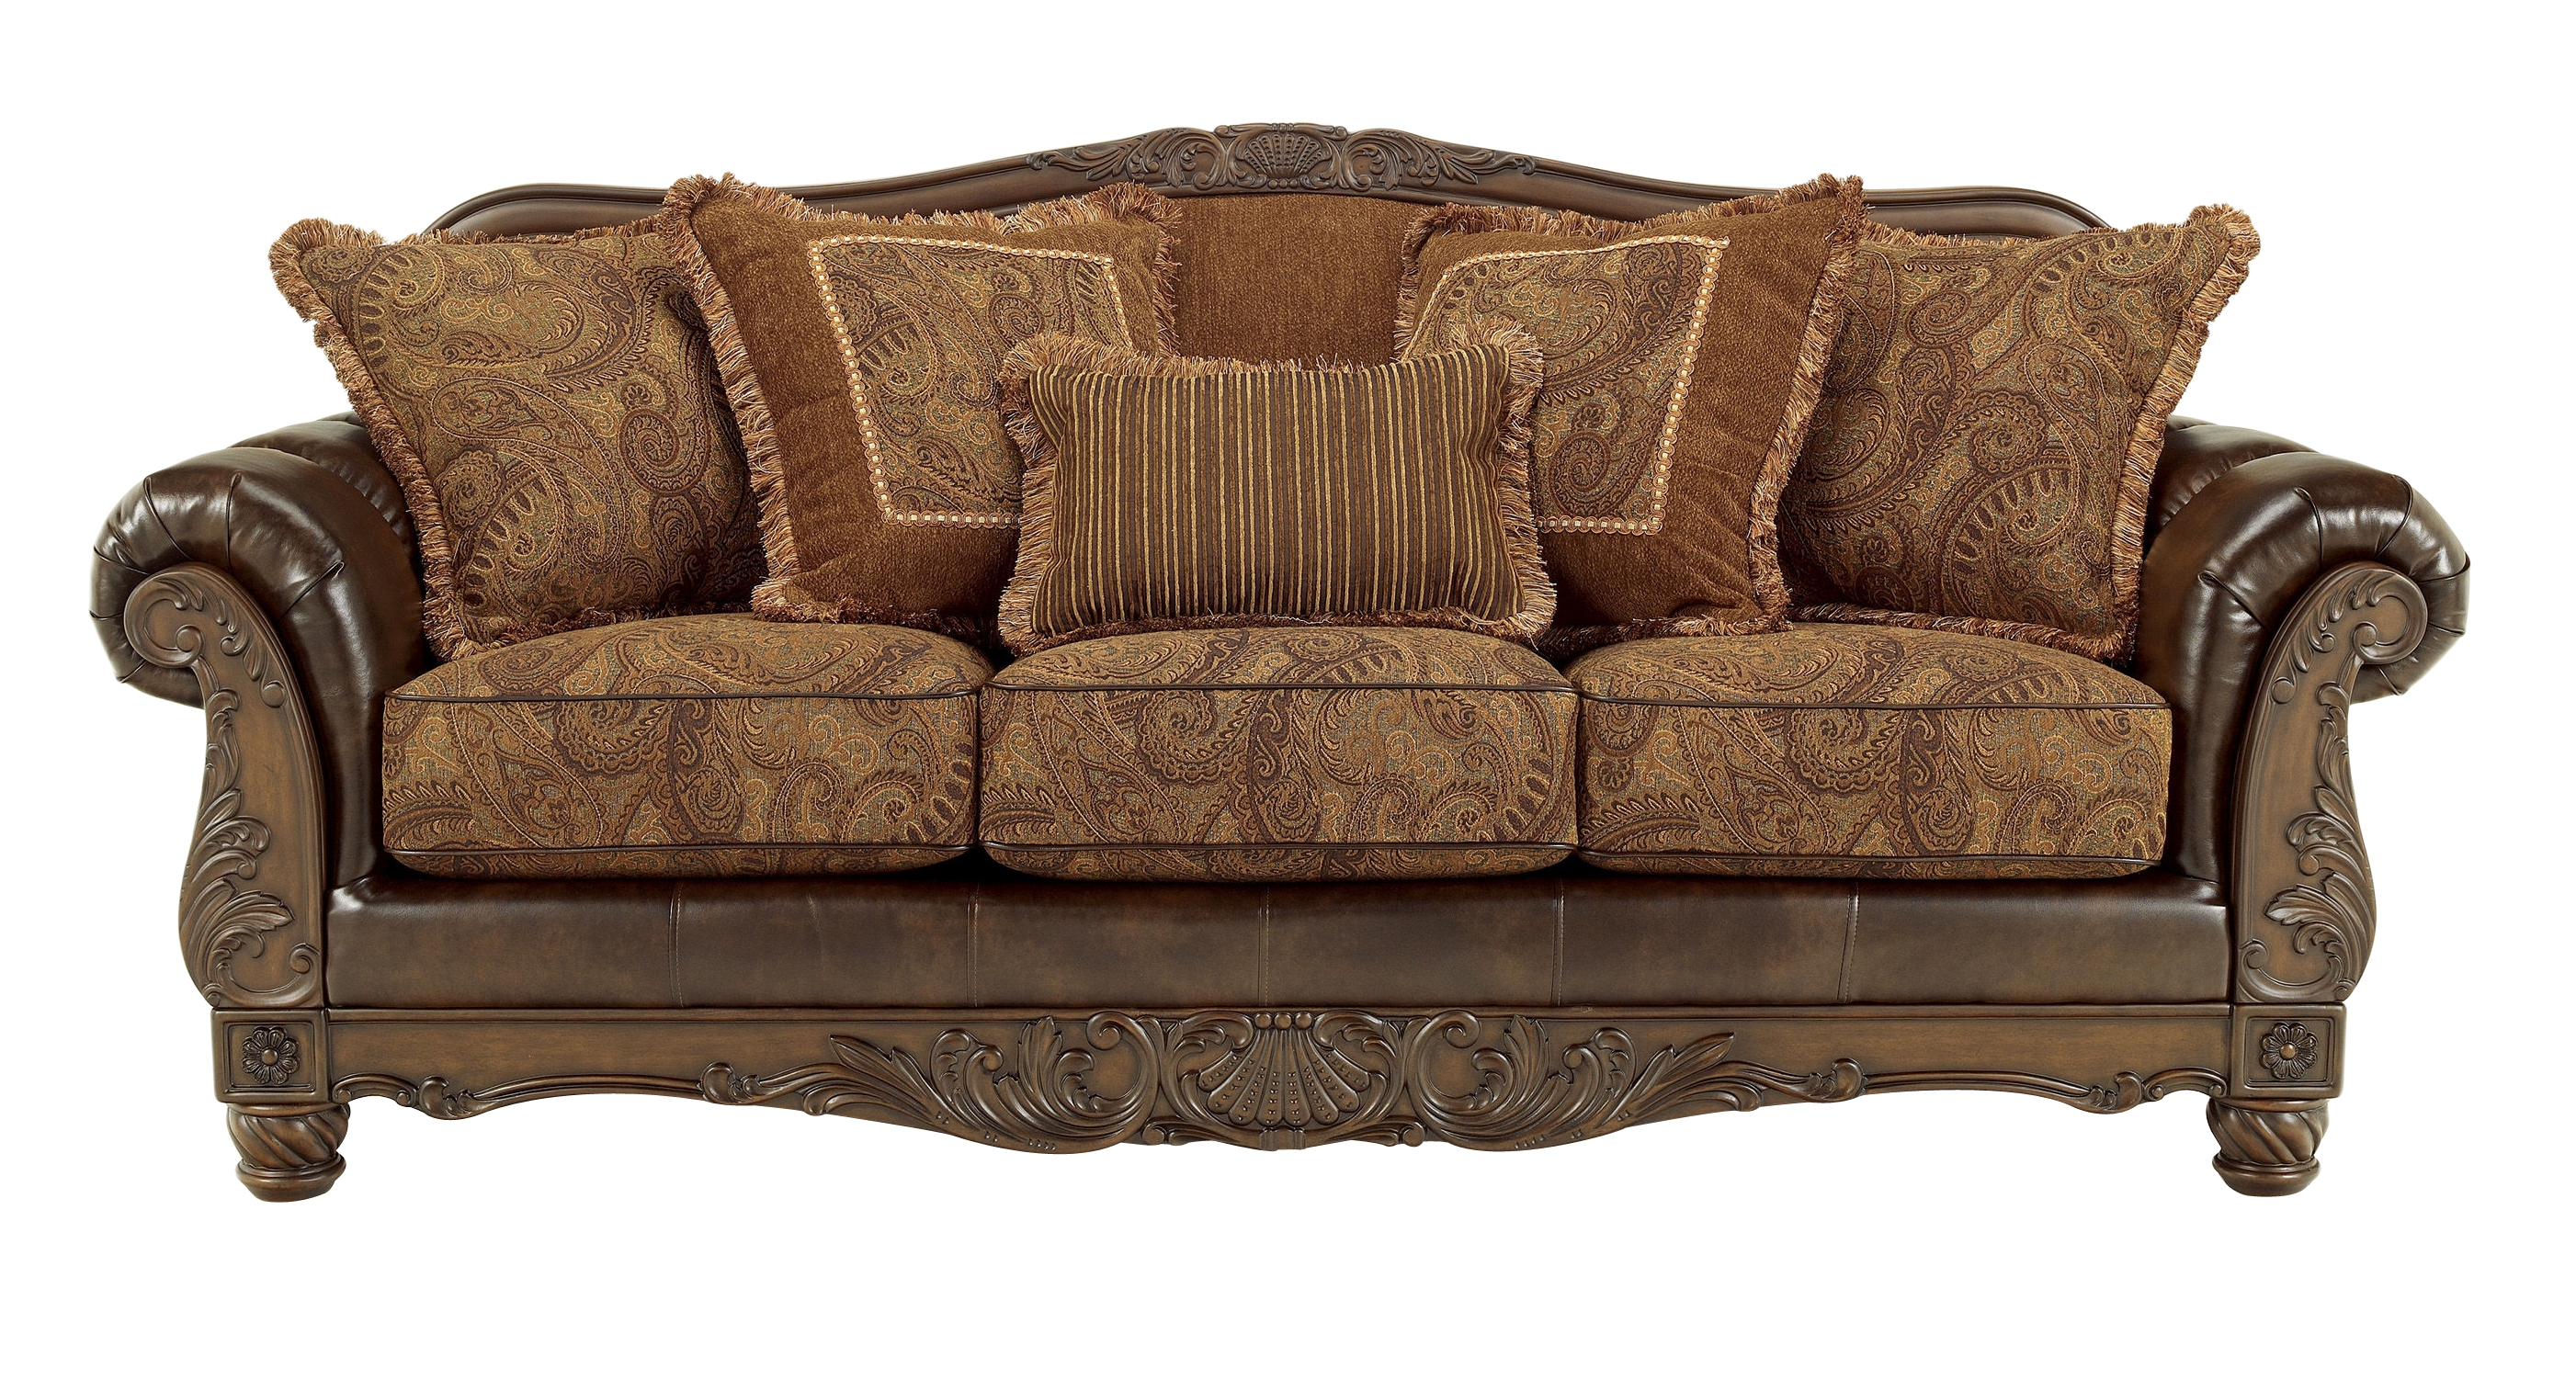 Ashley Furniture Fresco Durablend Antique Sofa